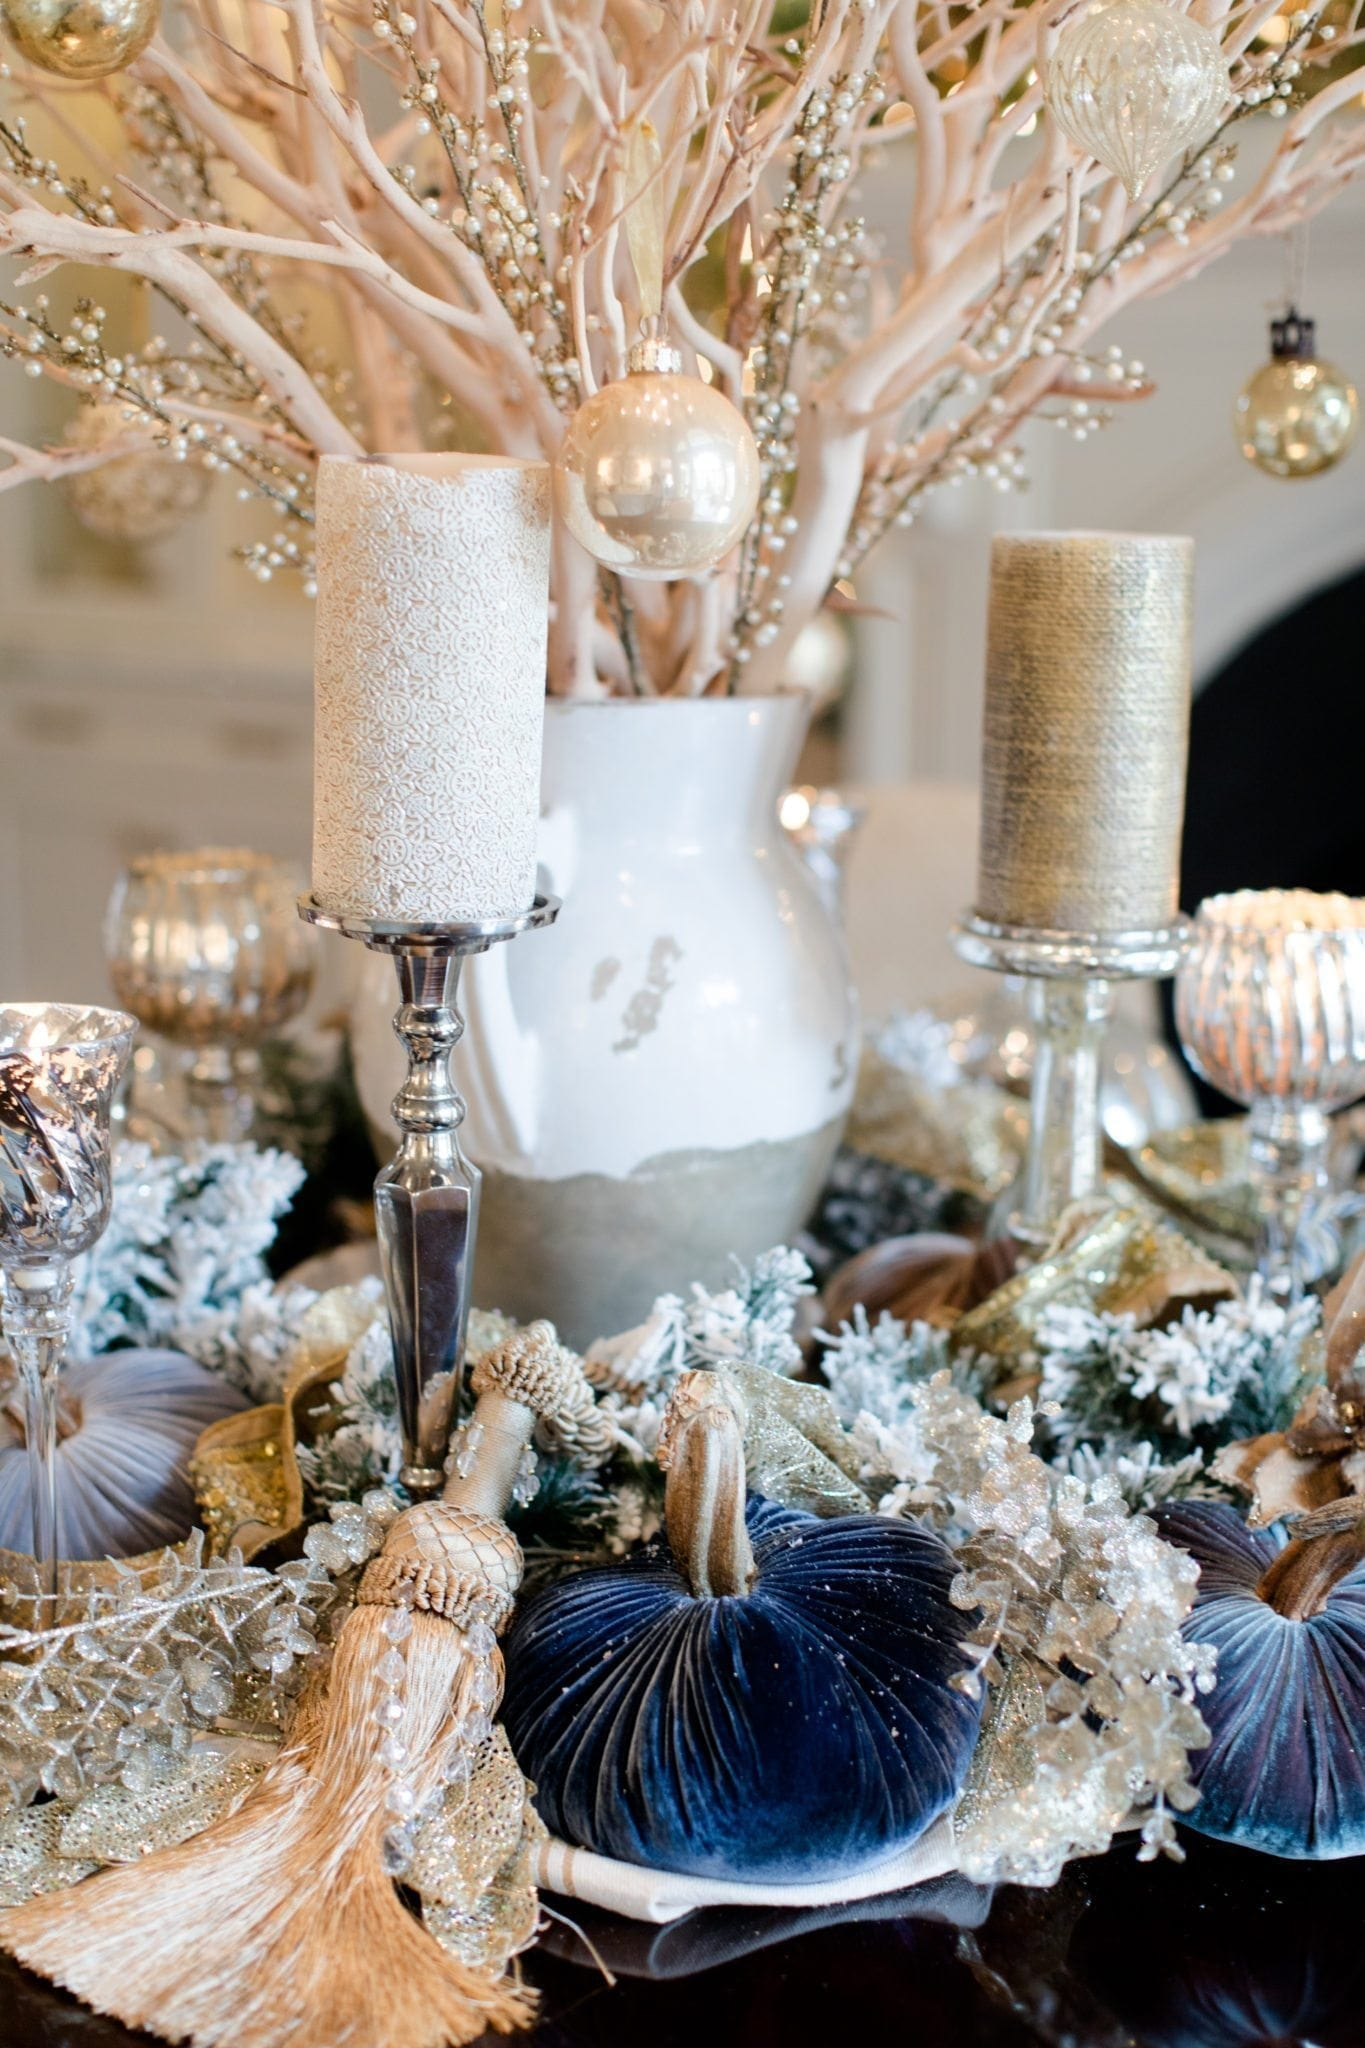 PlushPumpkins in blue with oversized tassels and silver candlesticks.